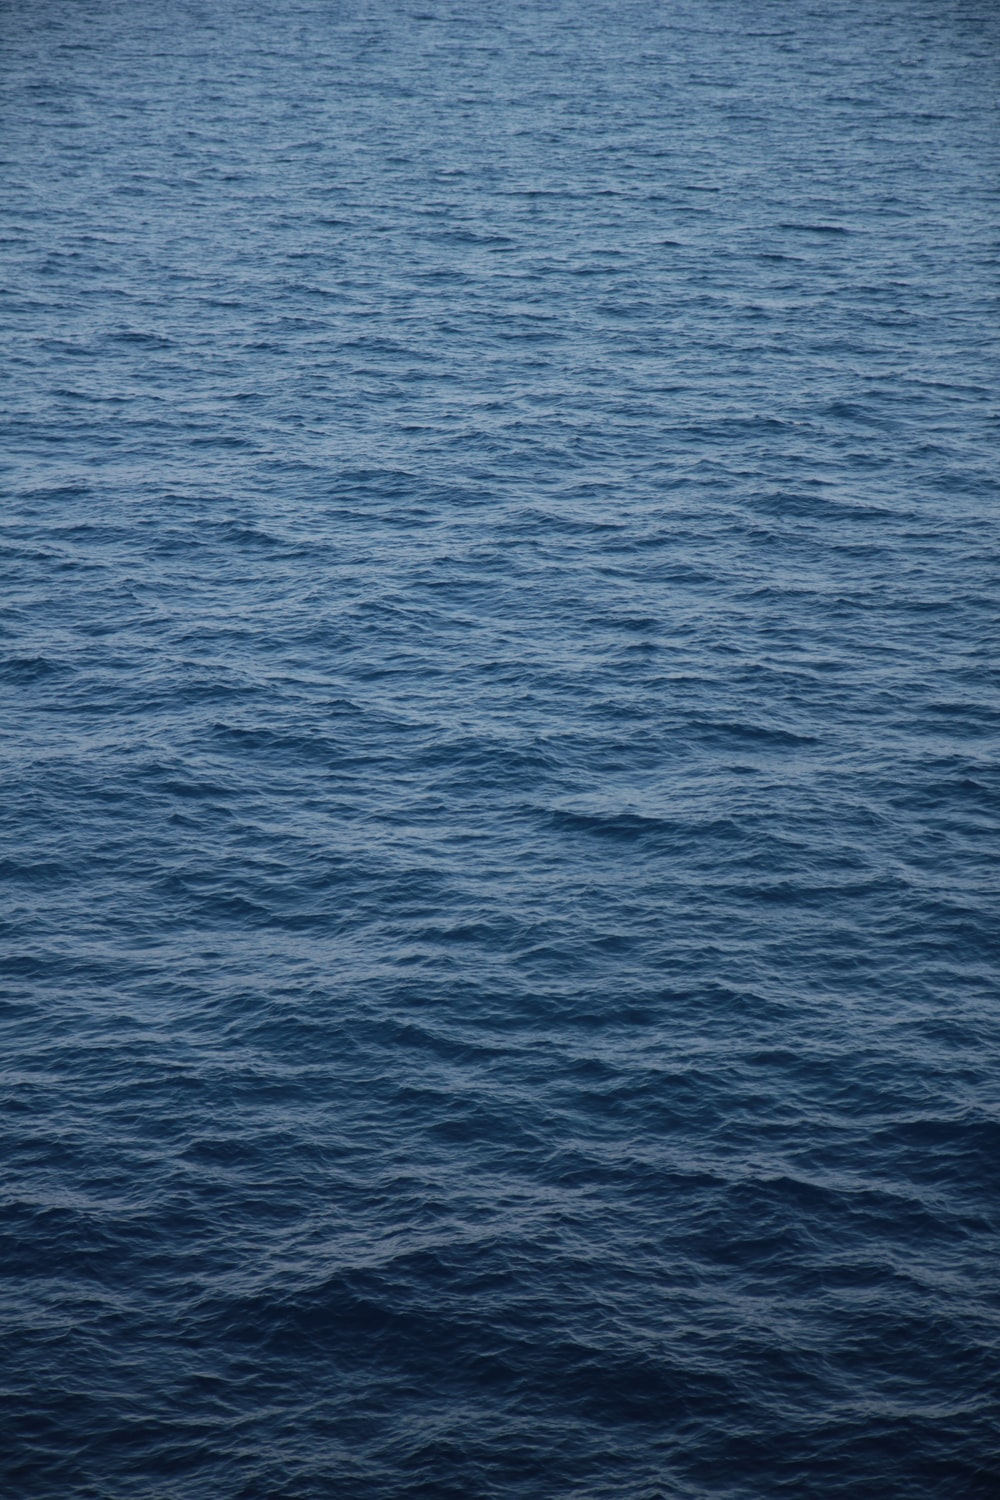 blue body of water at daytime